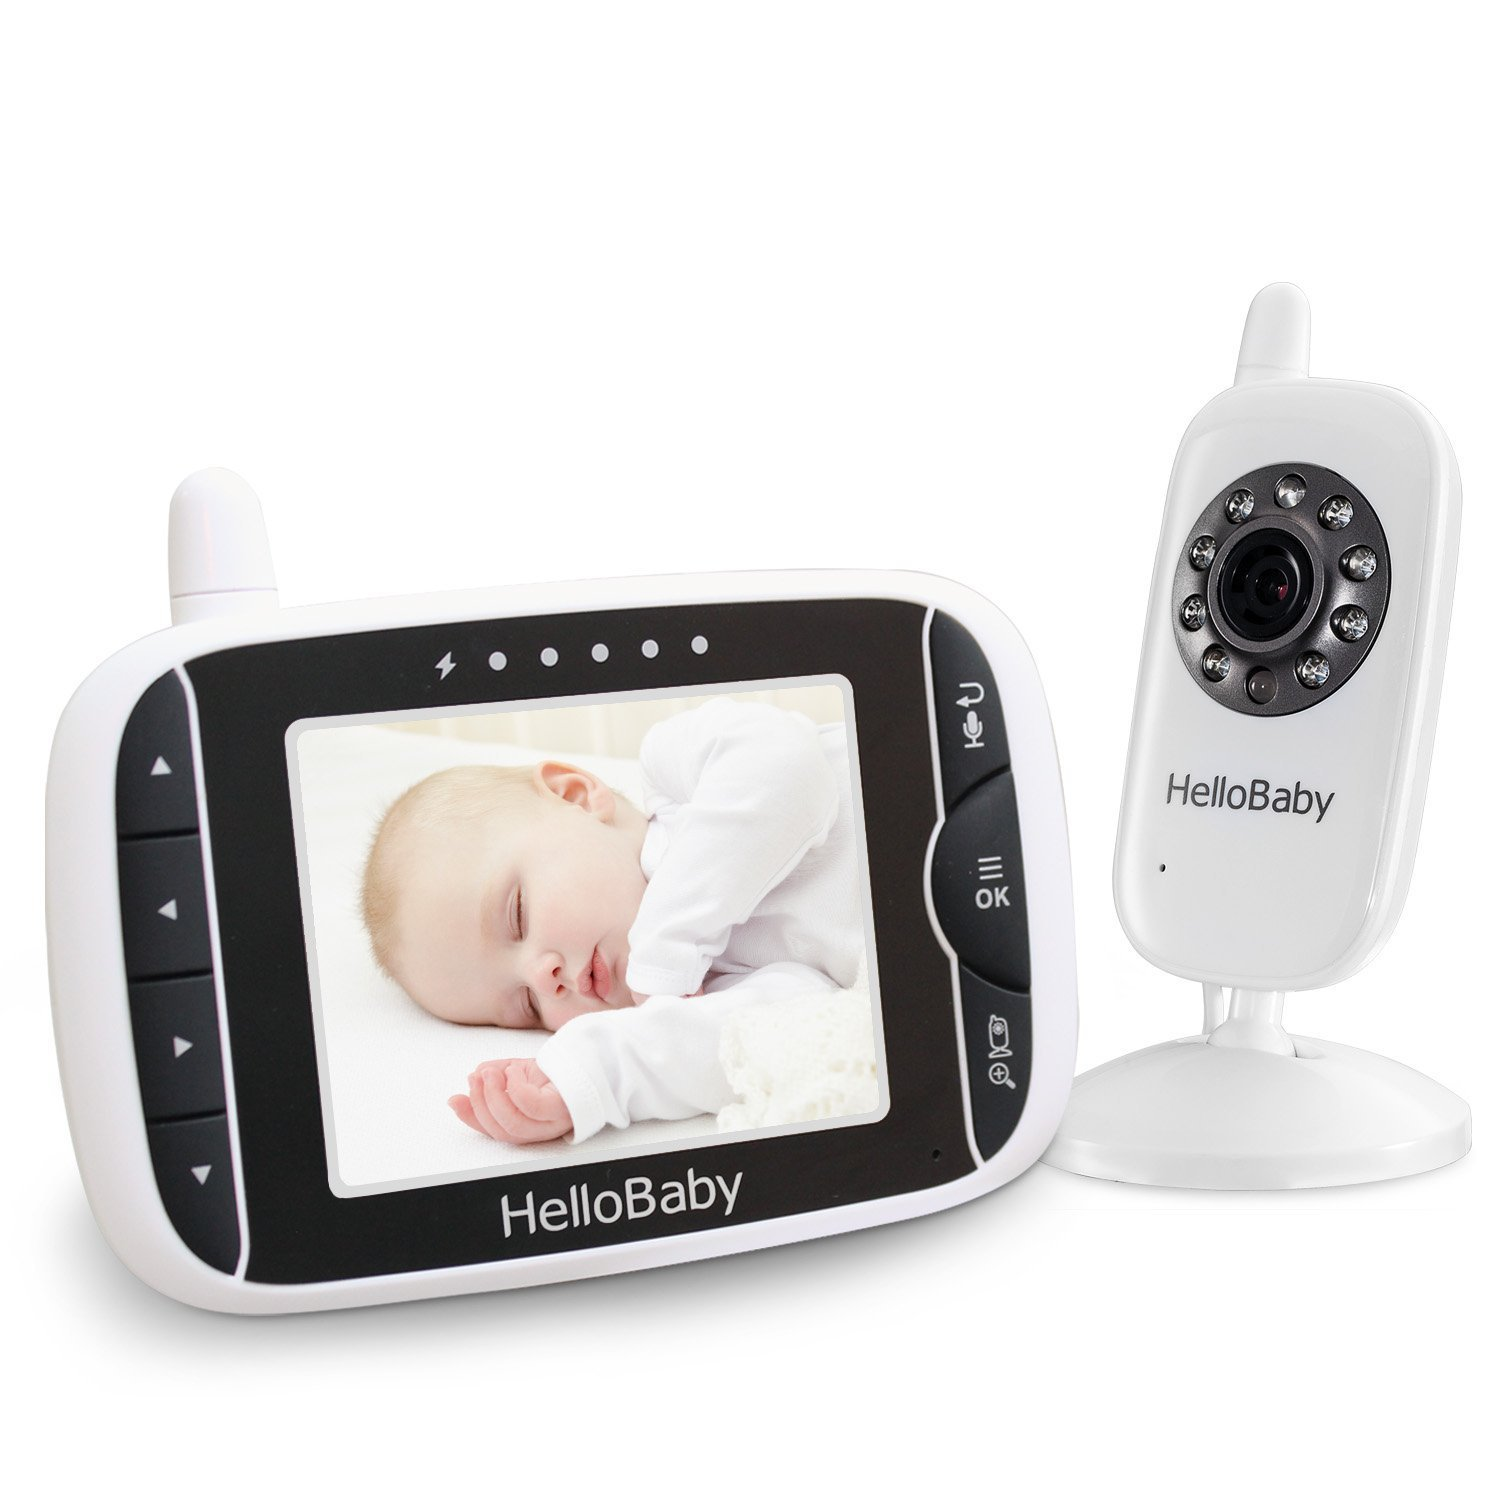 HelloBaby Wireless Video Baby Monitor with Digital Camera, Night Vision Temperature Monitoring & 2 Way Talkback System, White (HB20)